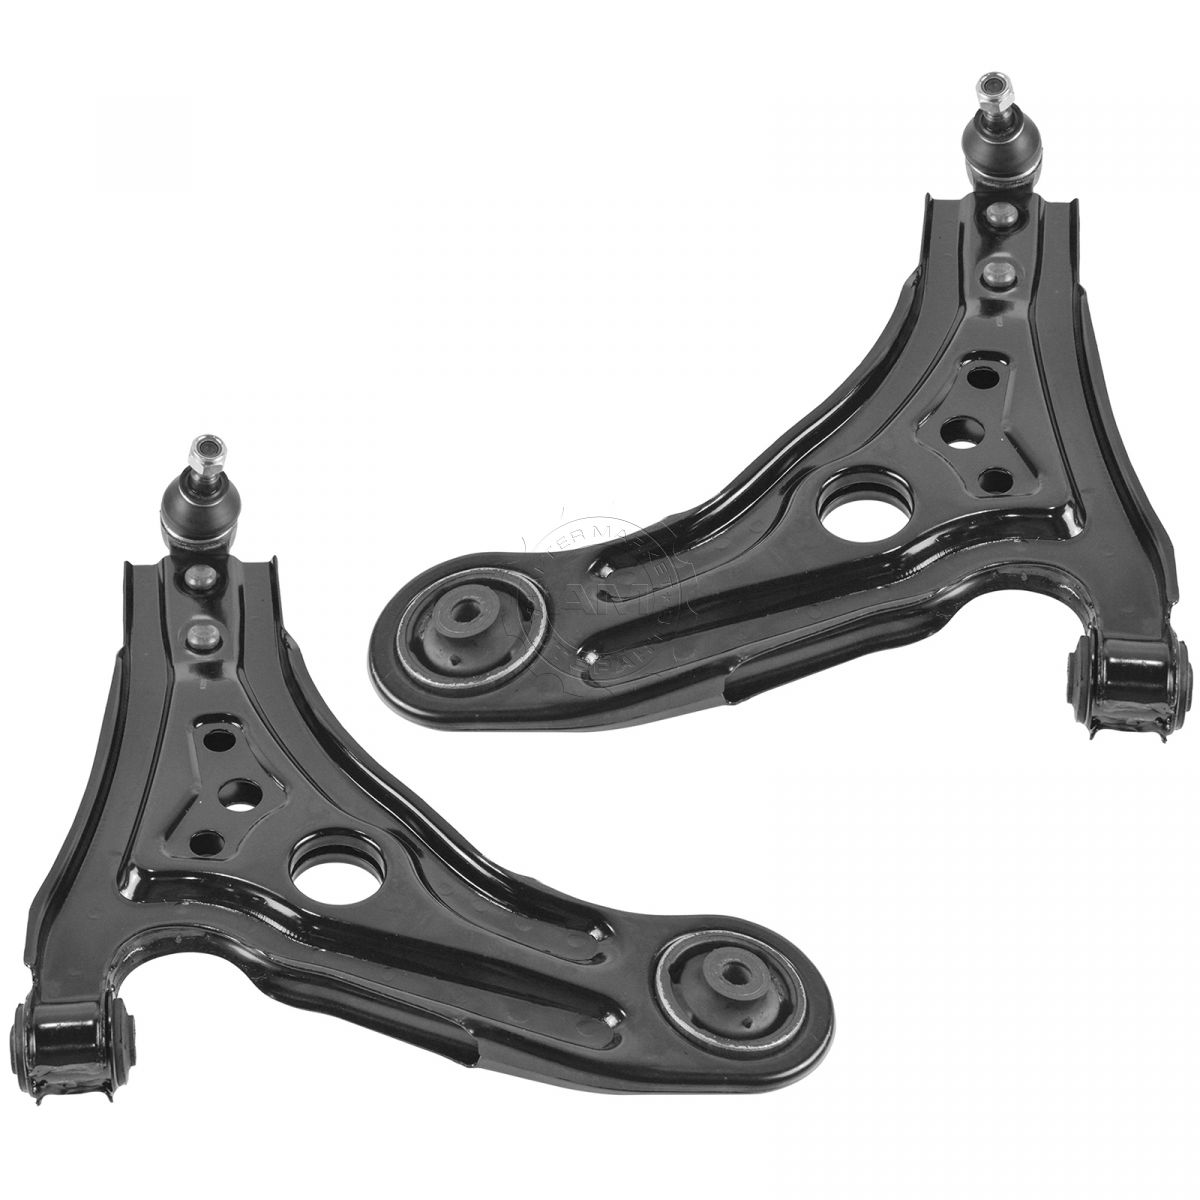 New Front Lower Left /& Right Control Arm Kit Fits Chevy Aveo Or Pontiac Wave G3